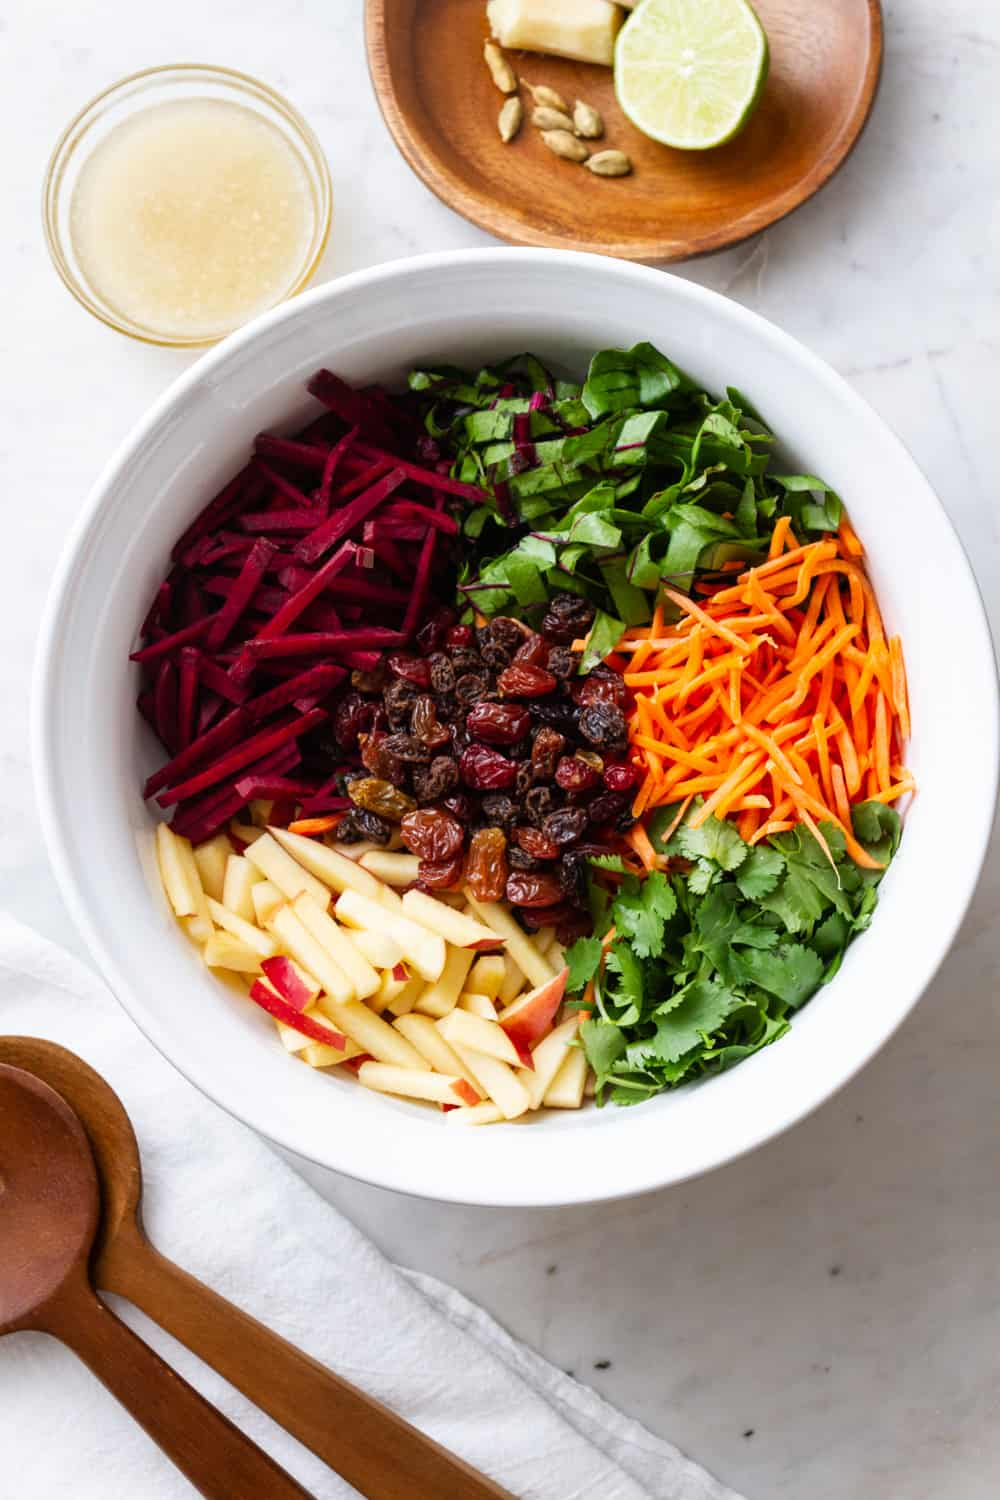 healthy detox salad ingredients added to a white serving bowl